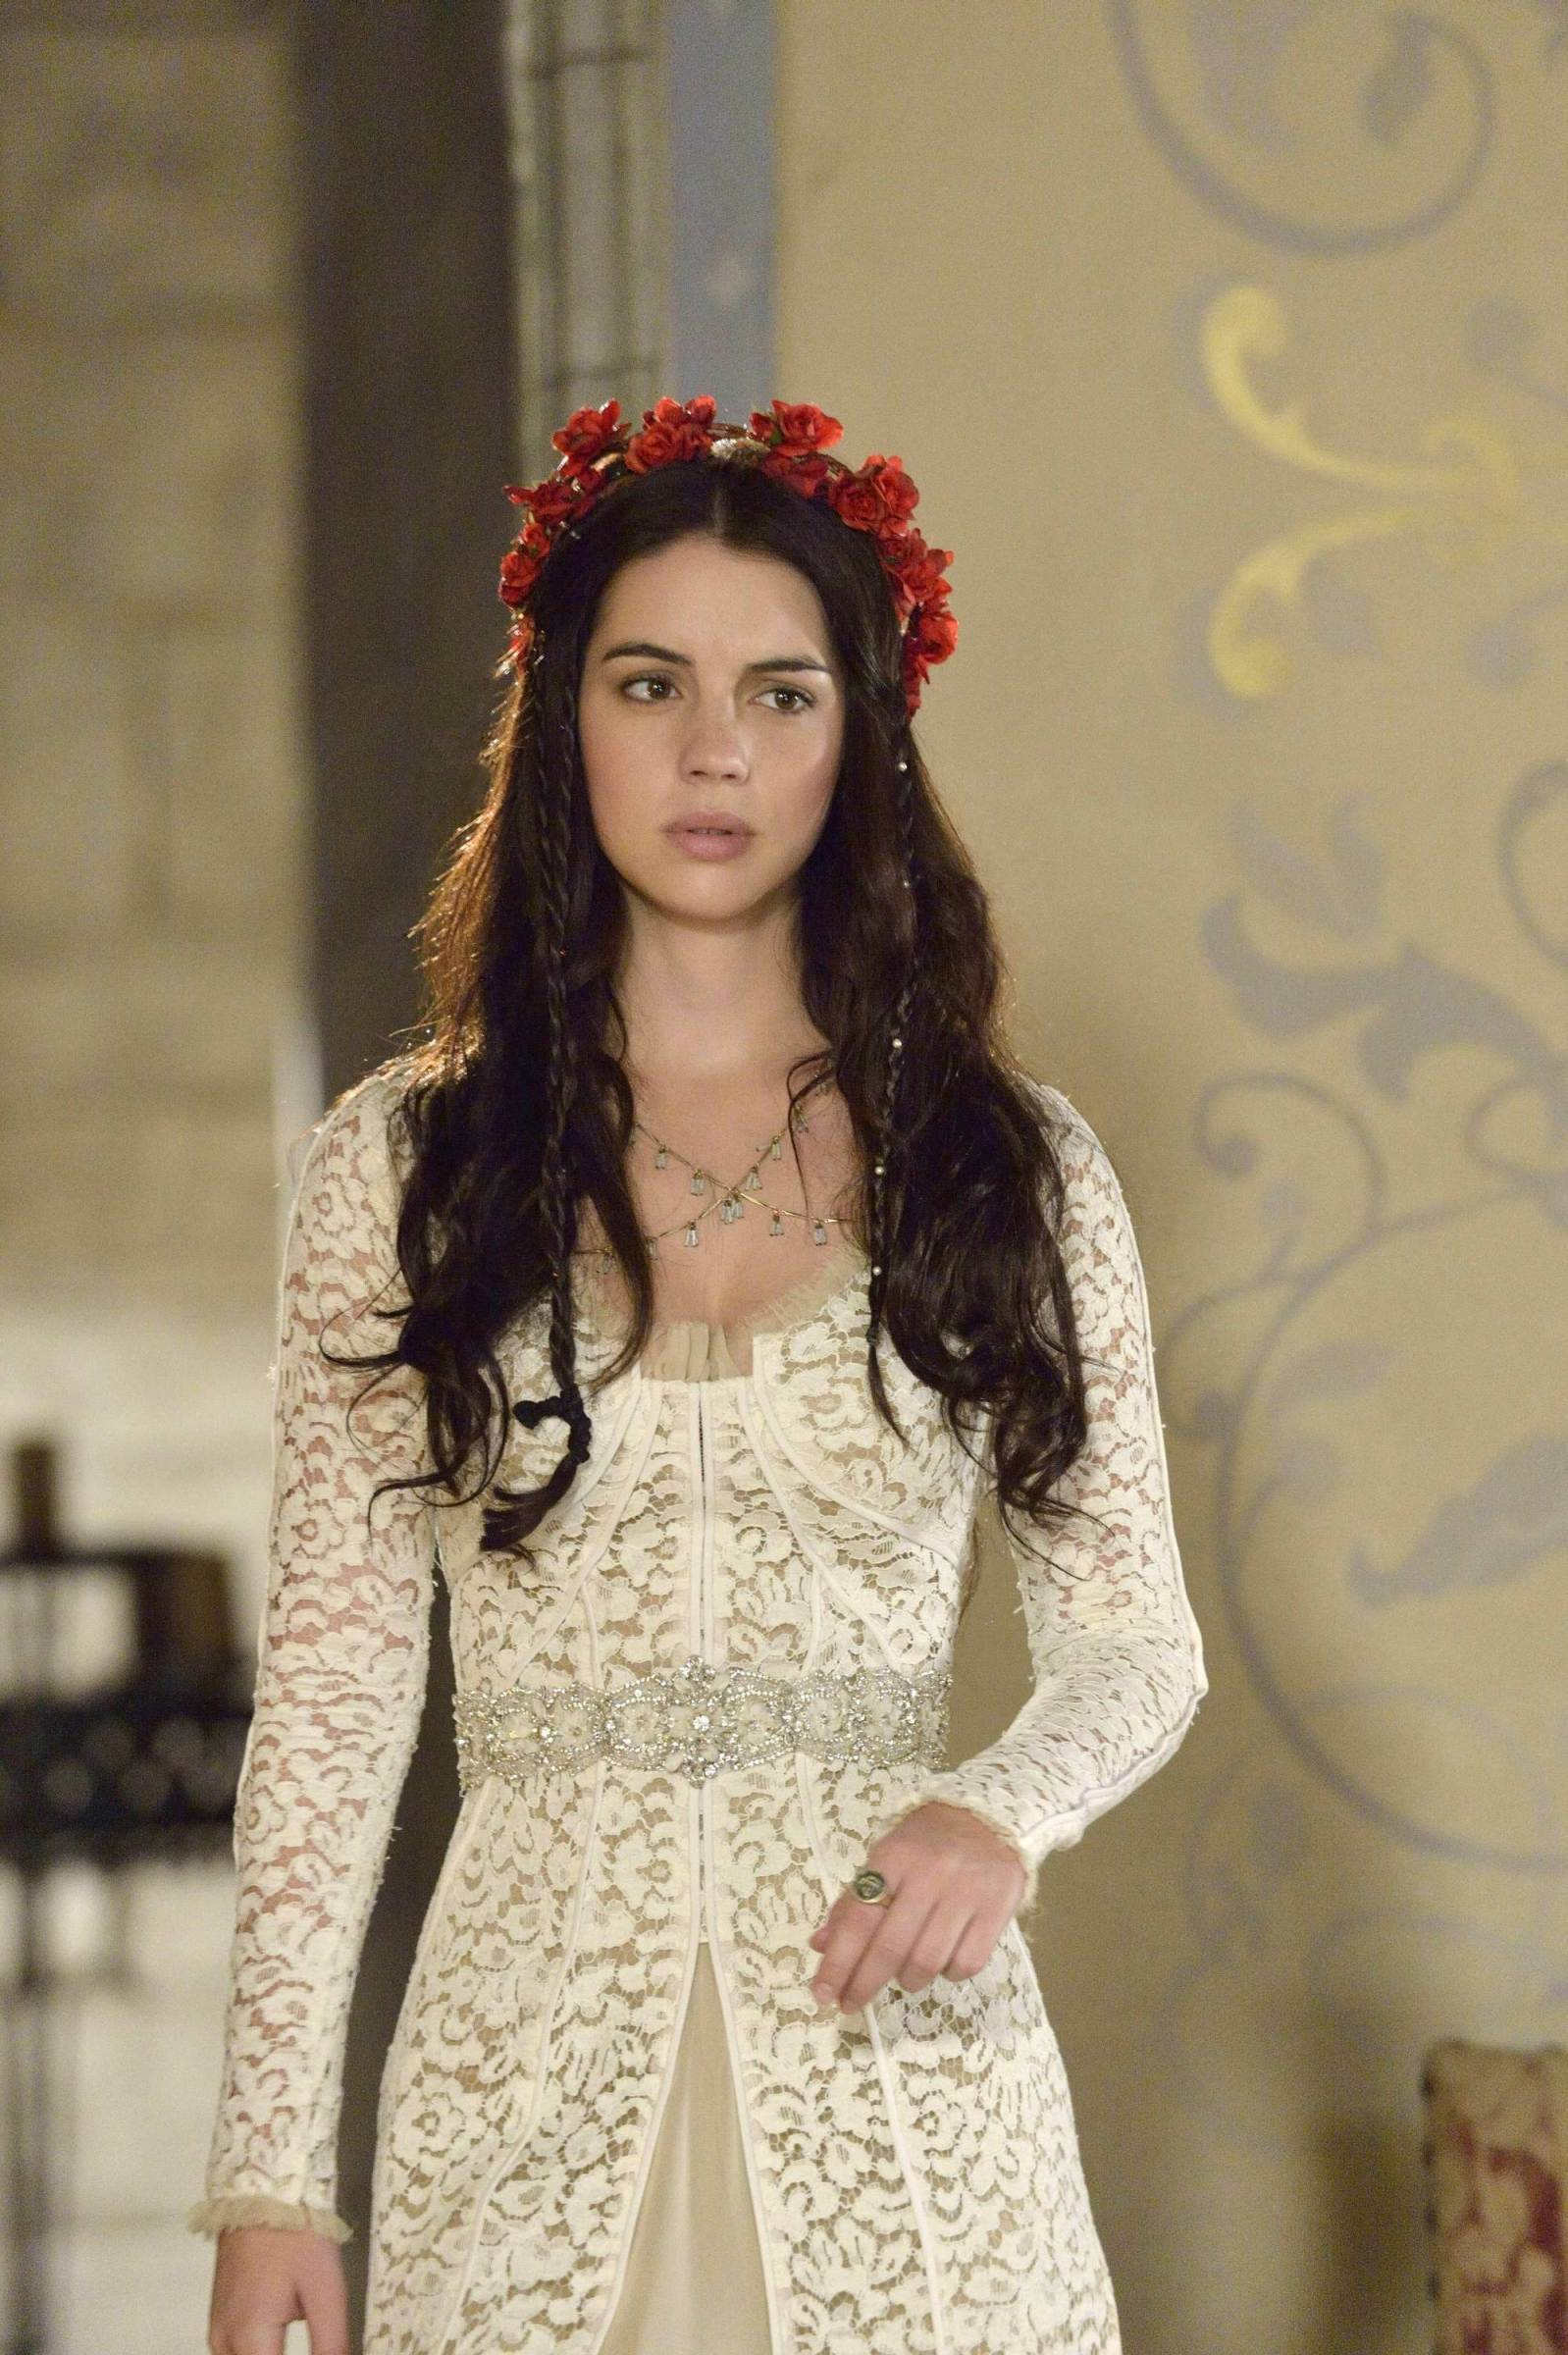 Reign episode 7 red dress hairstyles